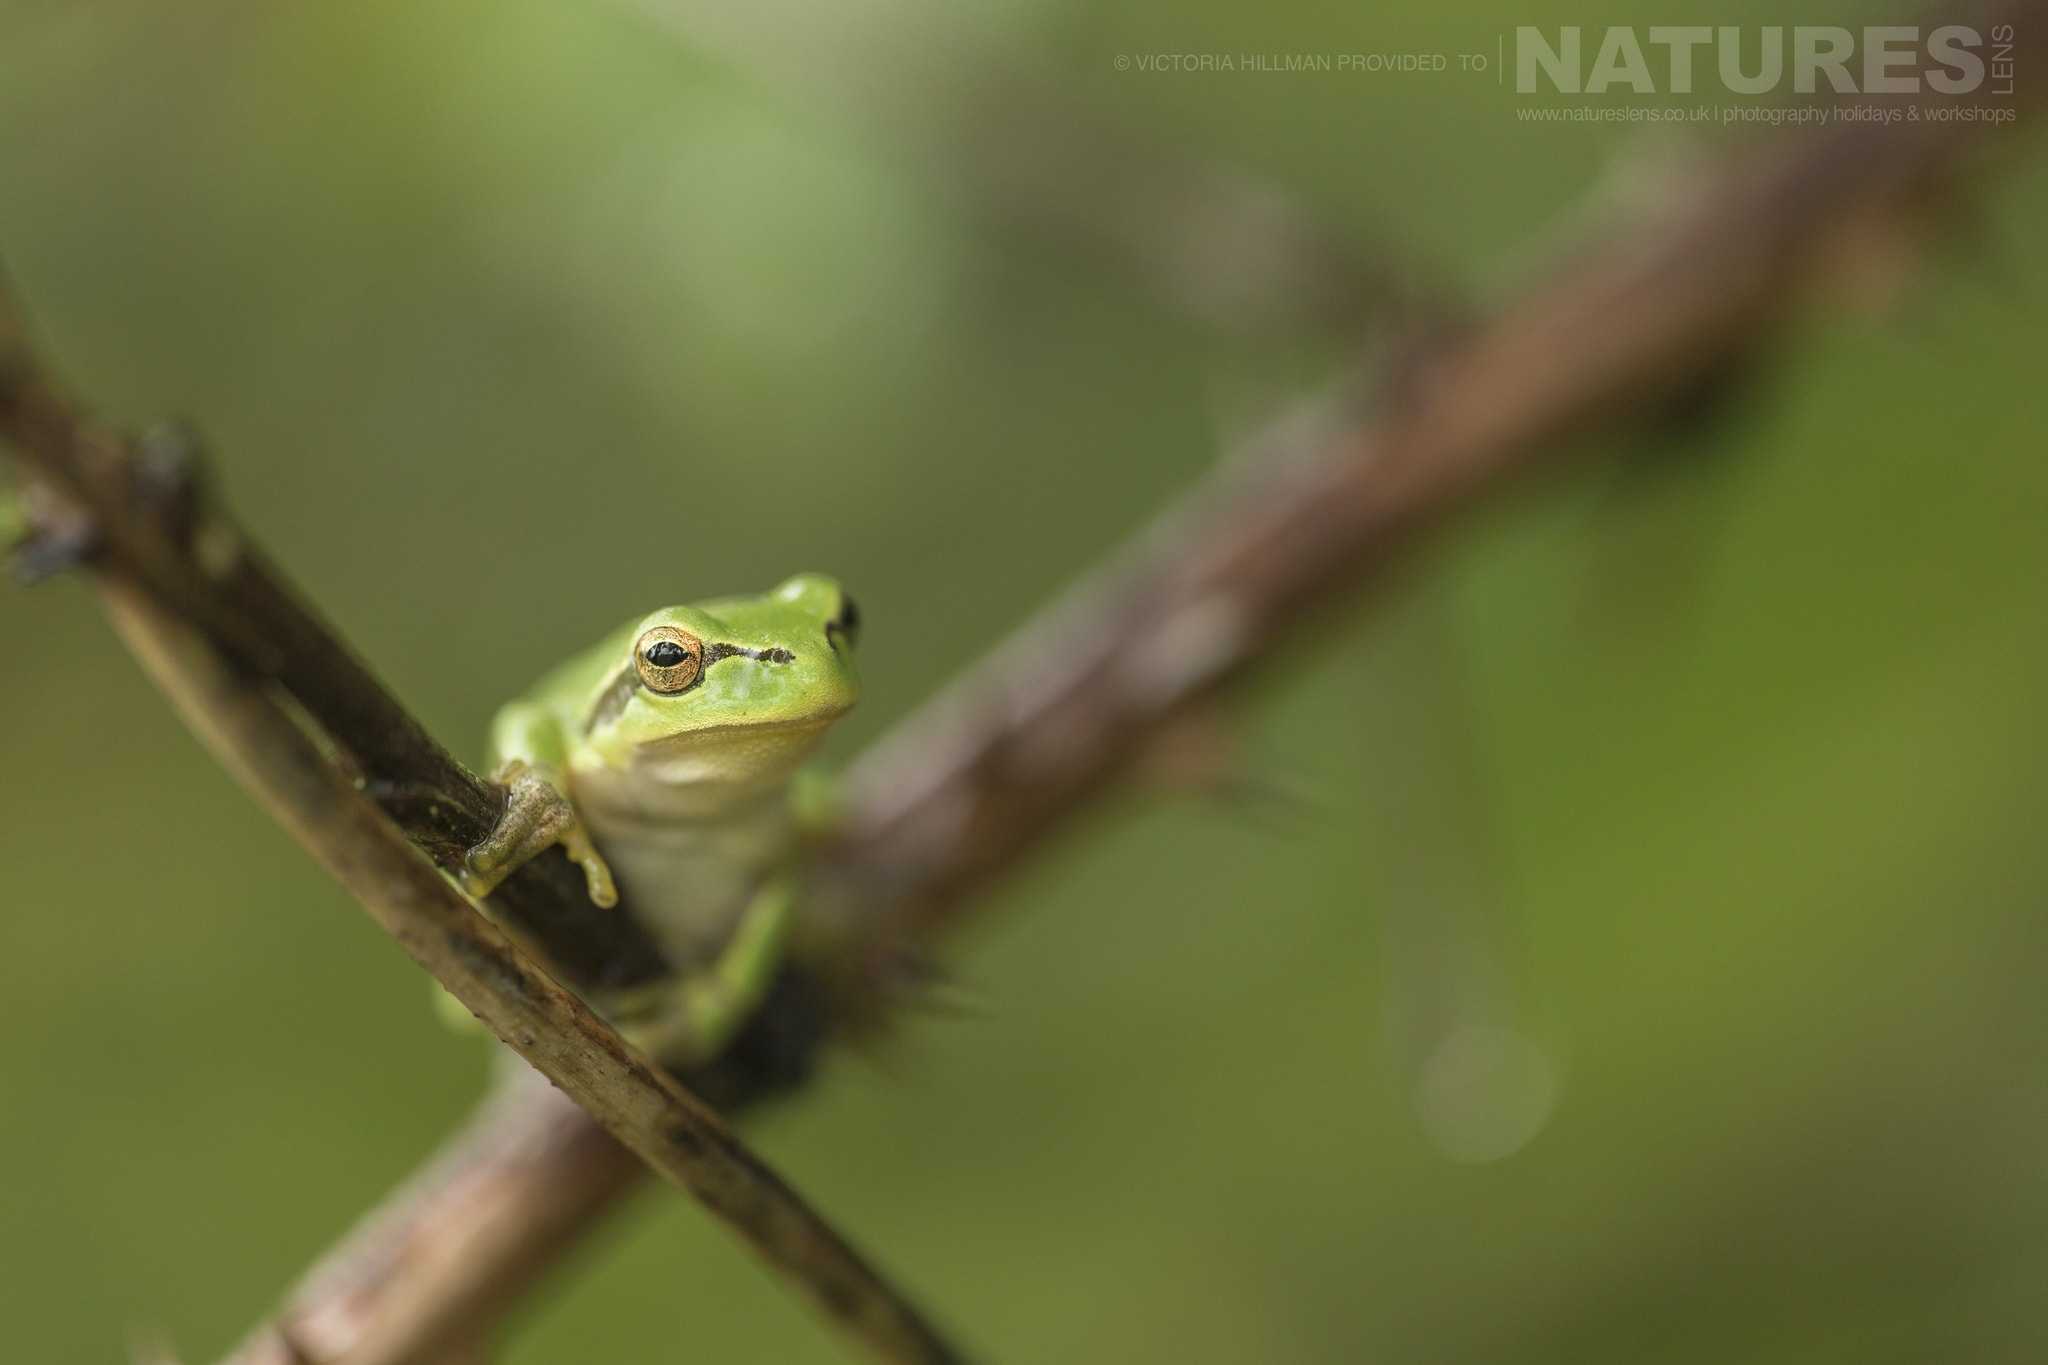 A Juvenile European Tree Frog   One Of The Species That May Be Photographed During The NaturesLens Reptiles & Amphibians Of Bulgaria Photography Holiday